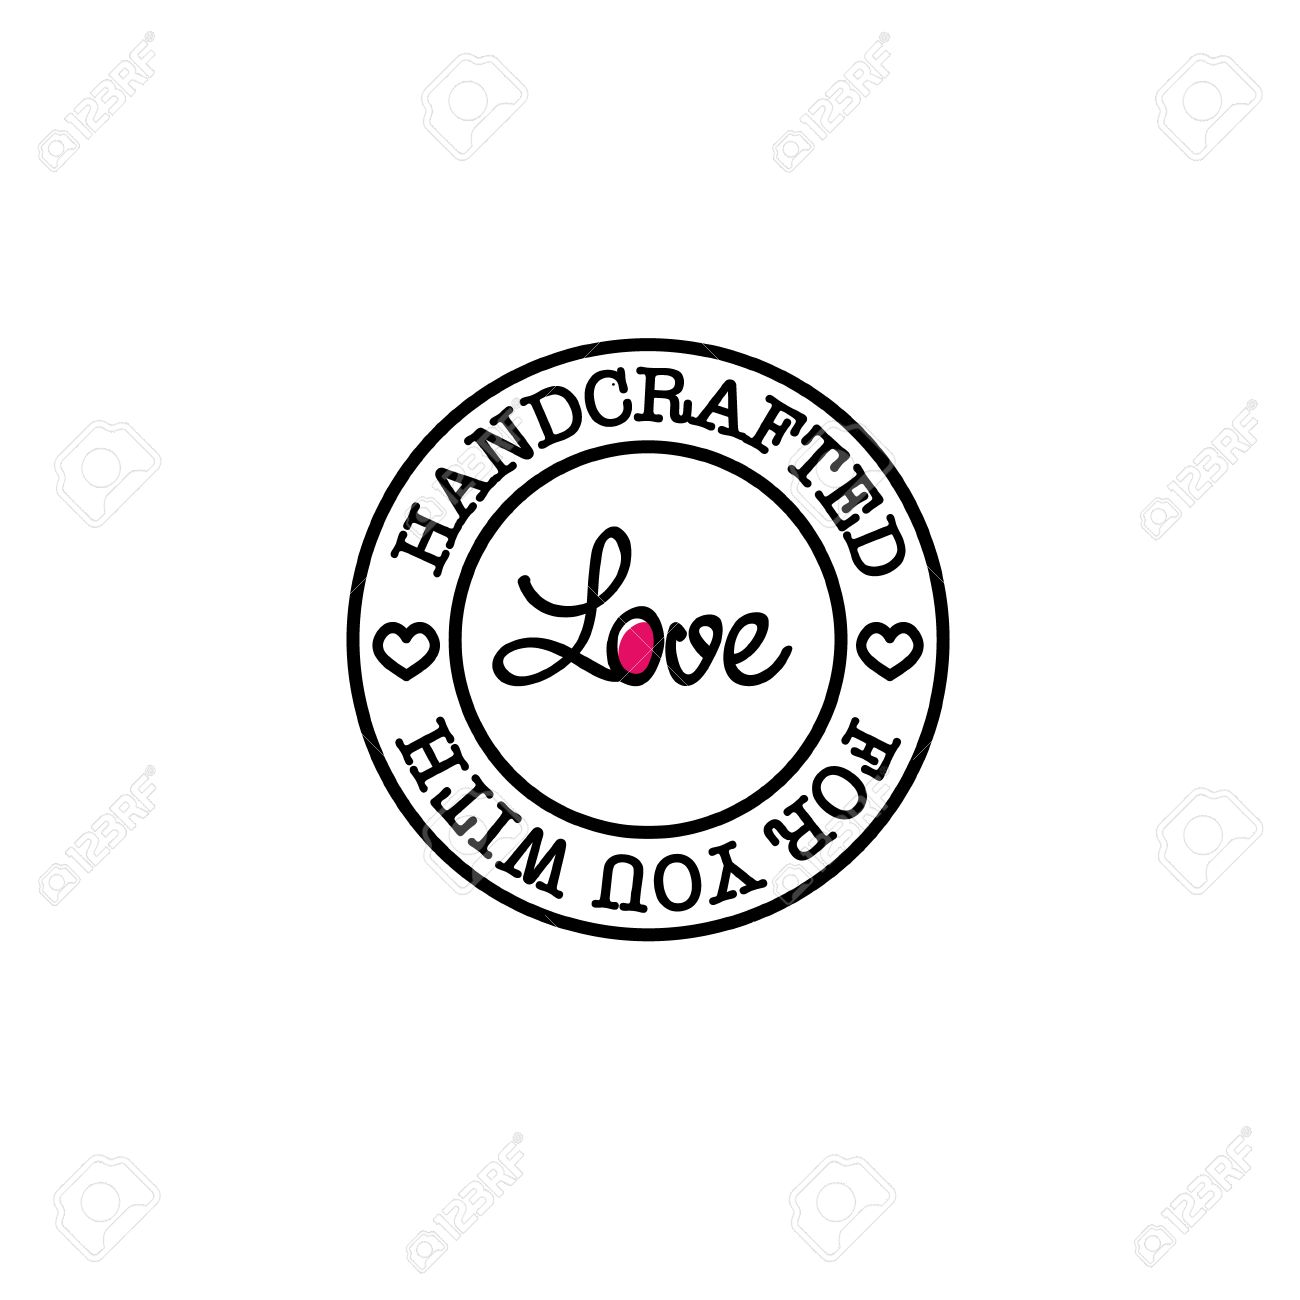 Hand-made for you with love retro badge design - 51361435